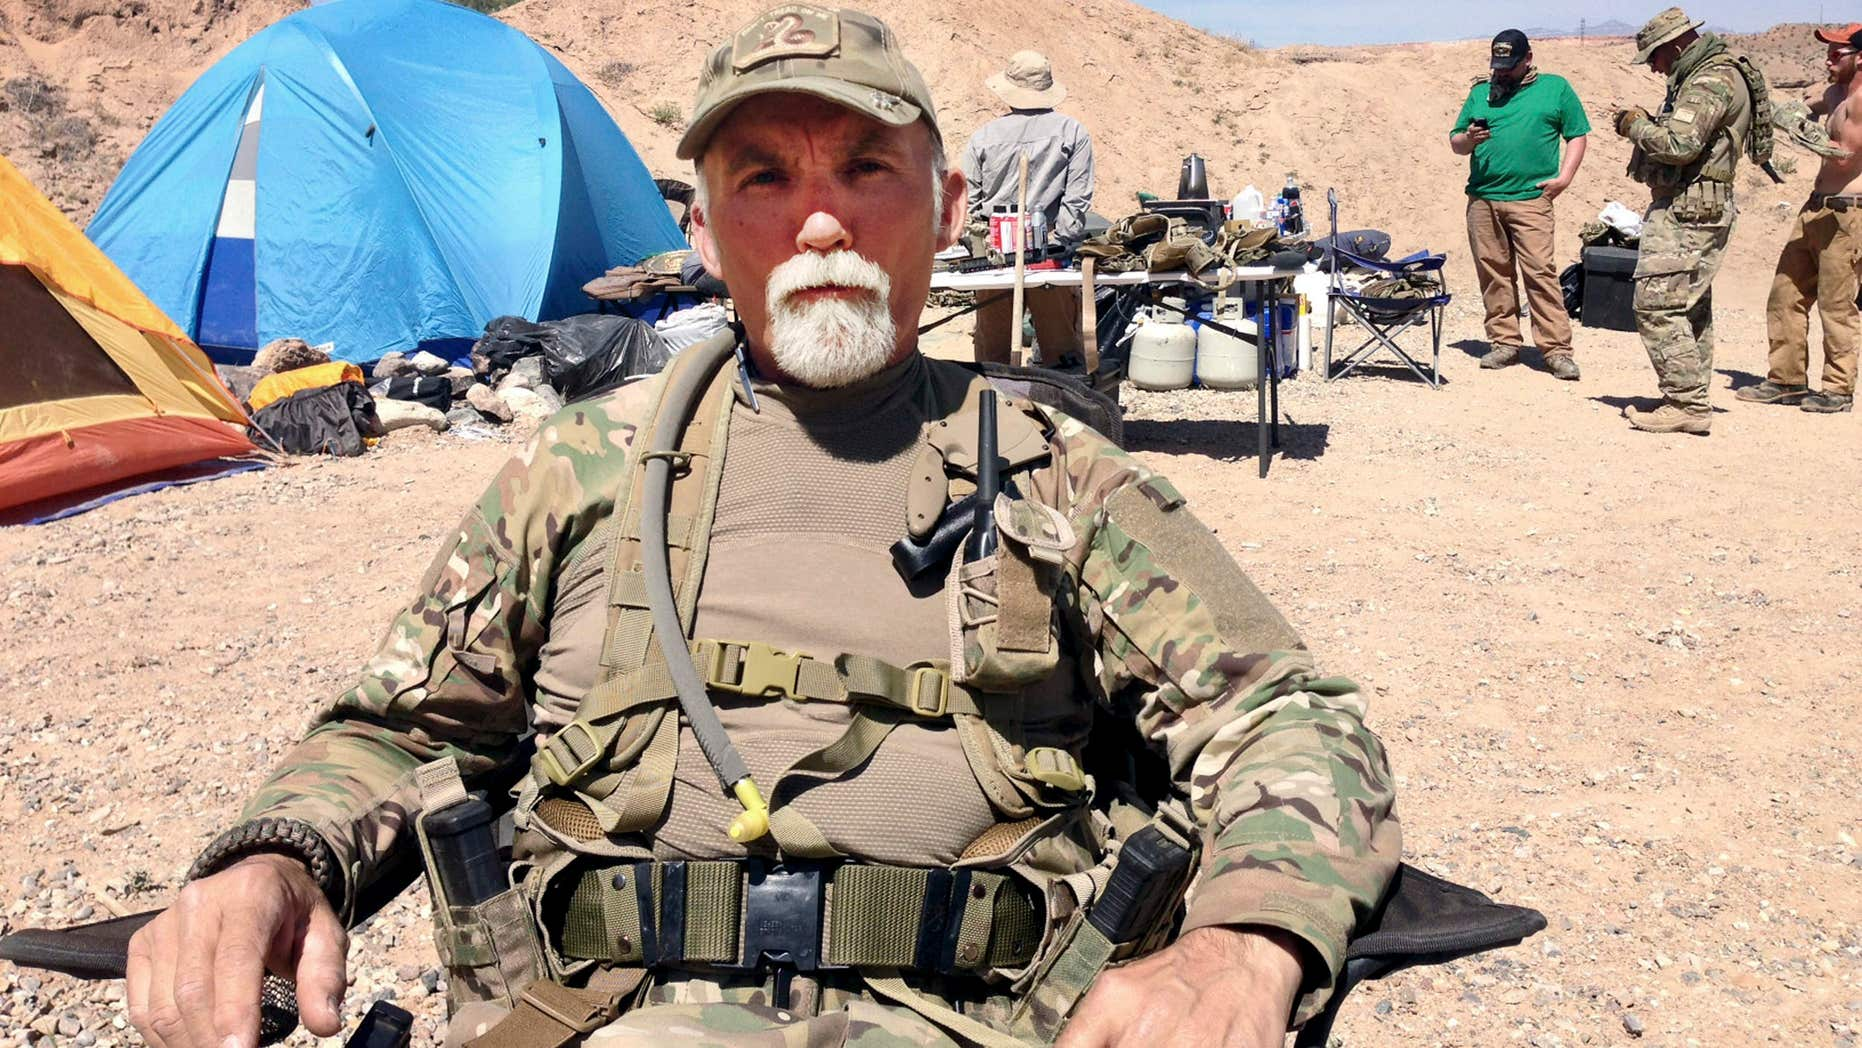 FILE - In this April 16, 2014 file photo, Jerry DeLemus, of Rochester, N.H., sits with a group of self-described militia members camping on rancher Cliven Bundy's ranch near Bunkerville, Nev.